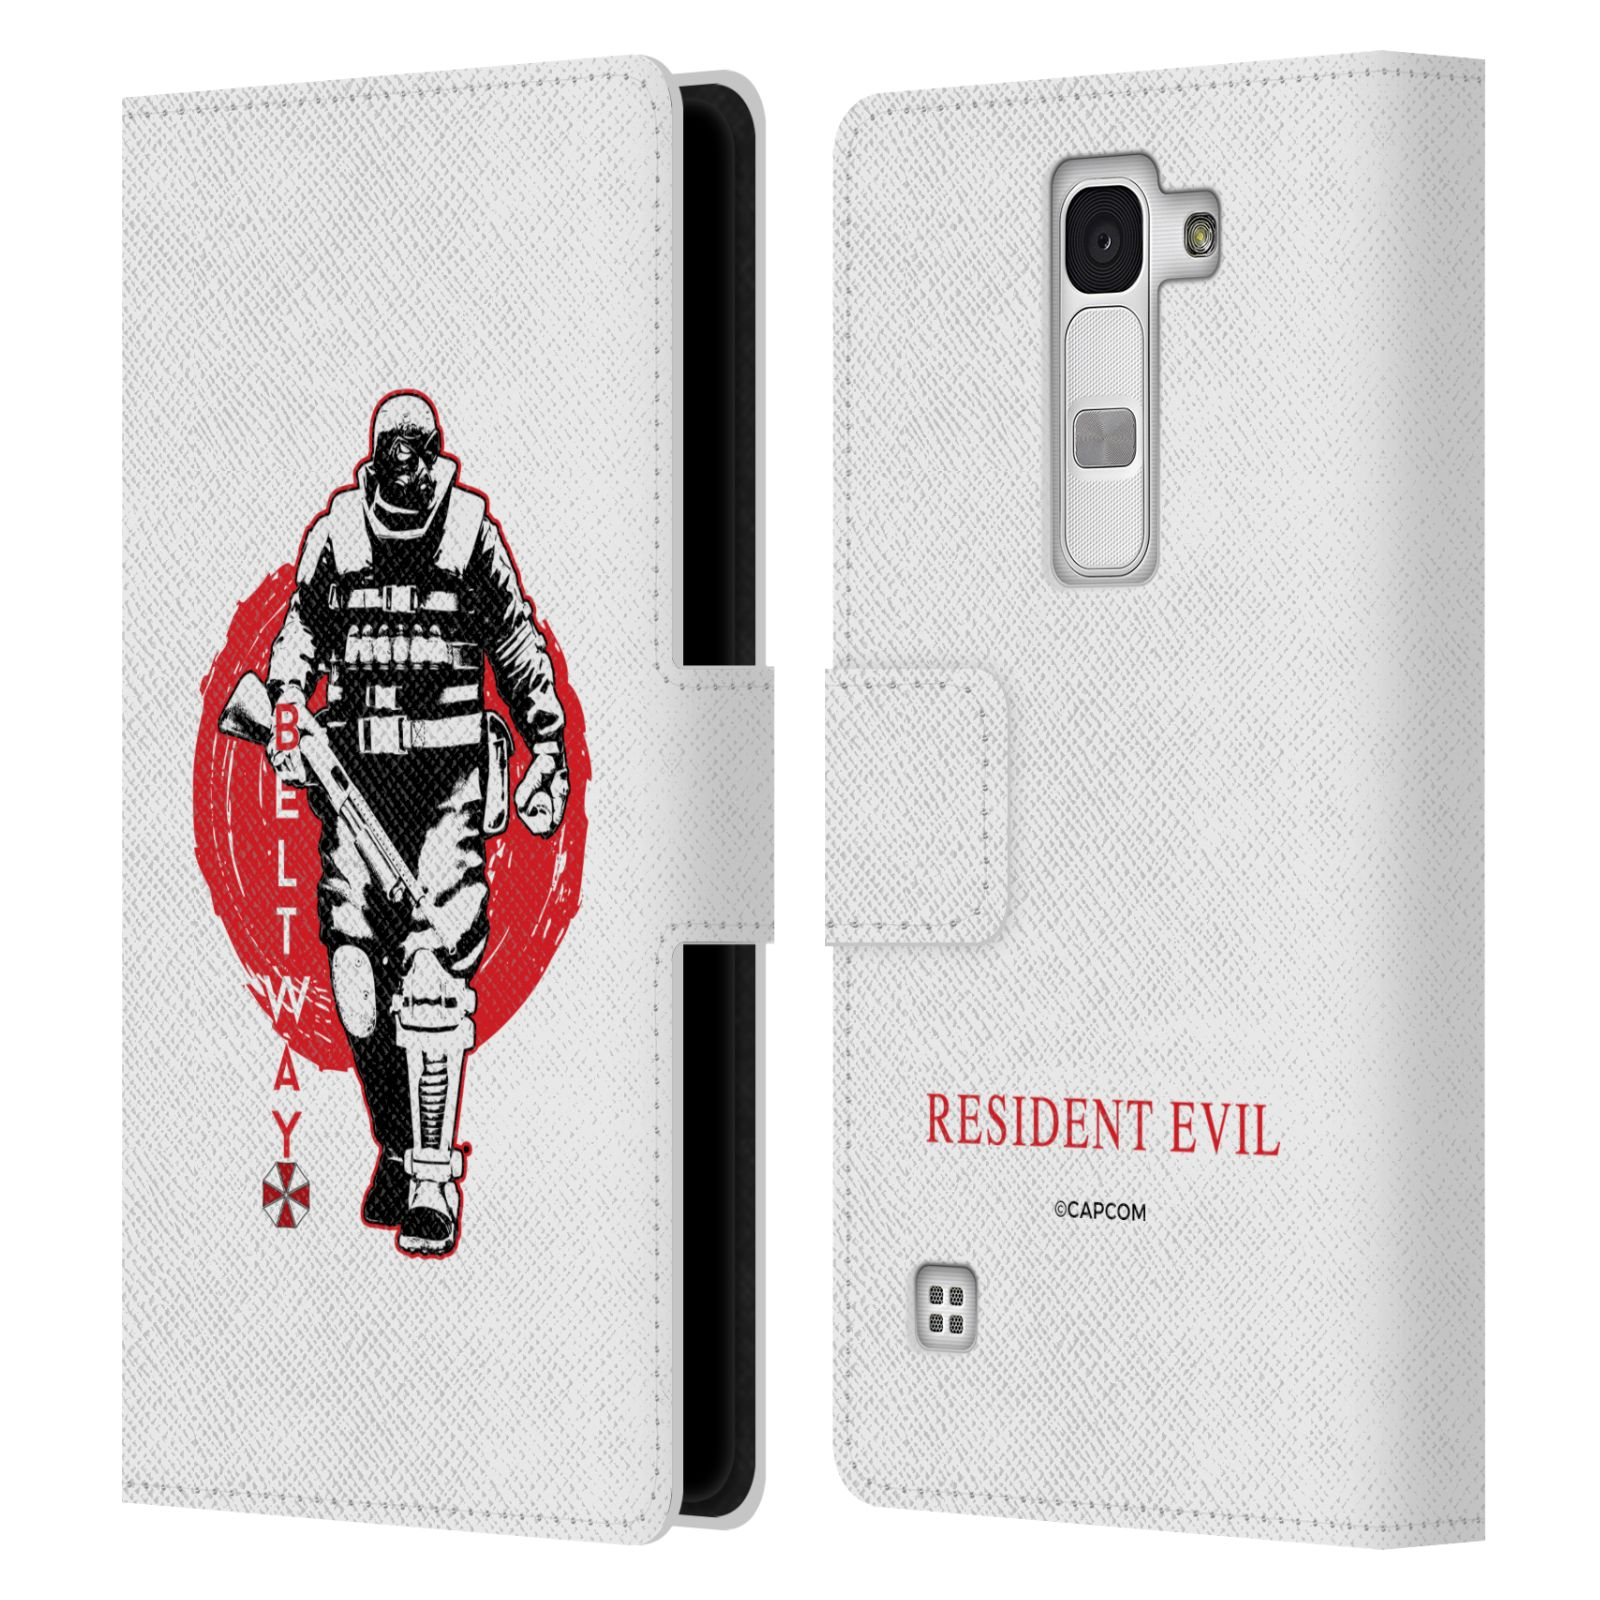 OFFICIAL-RESIDENT-EVIL-OPERATION-RACCOON-CITY-LEATHER-BOOK-CASE-FOR-LG-PHONES-2